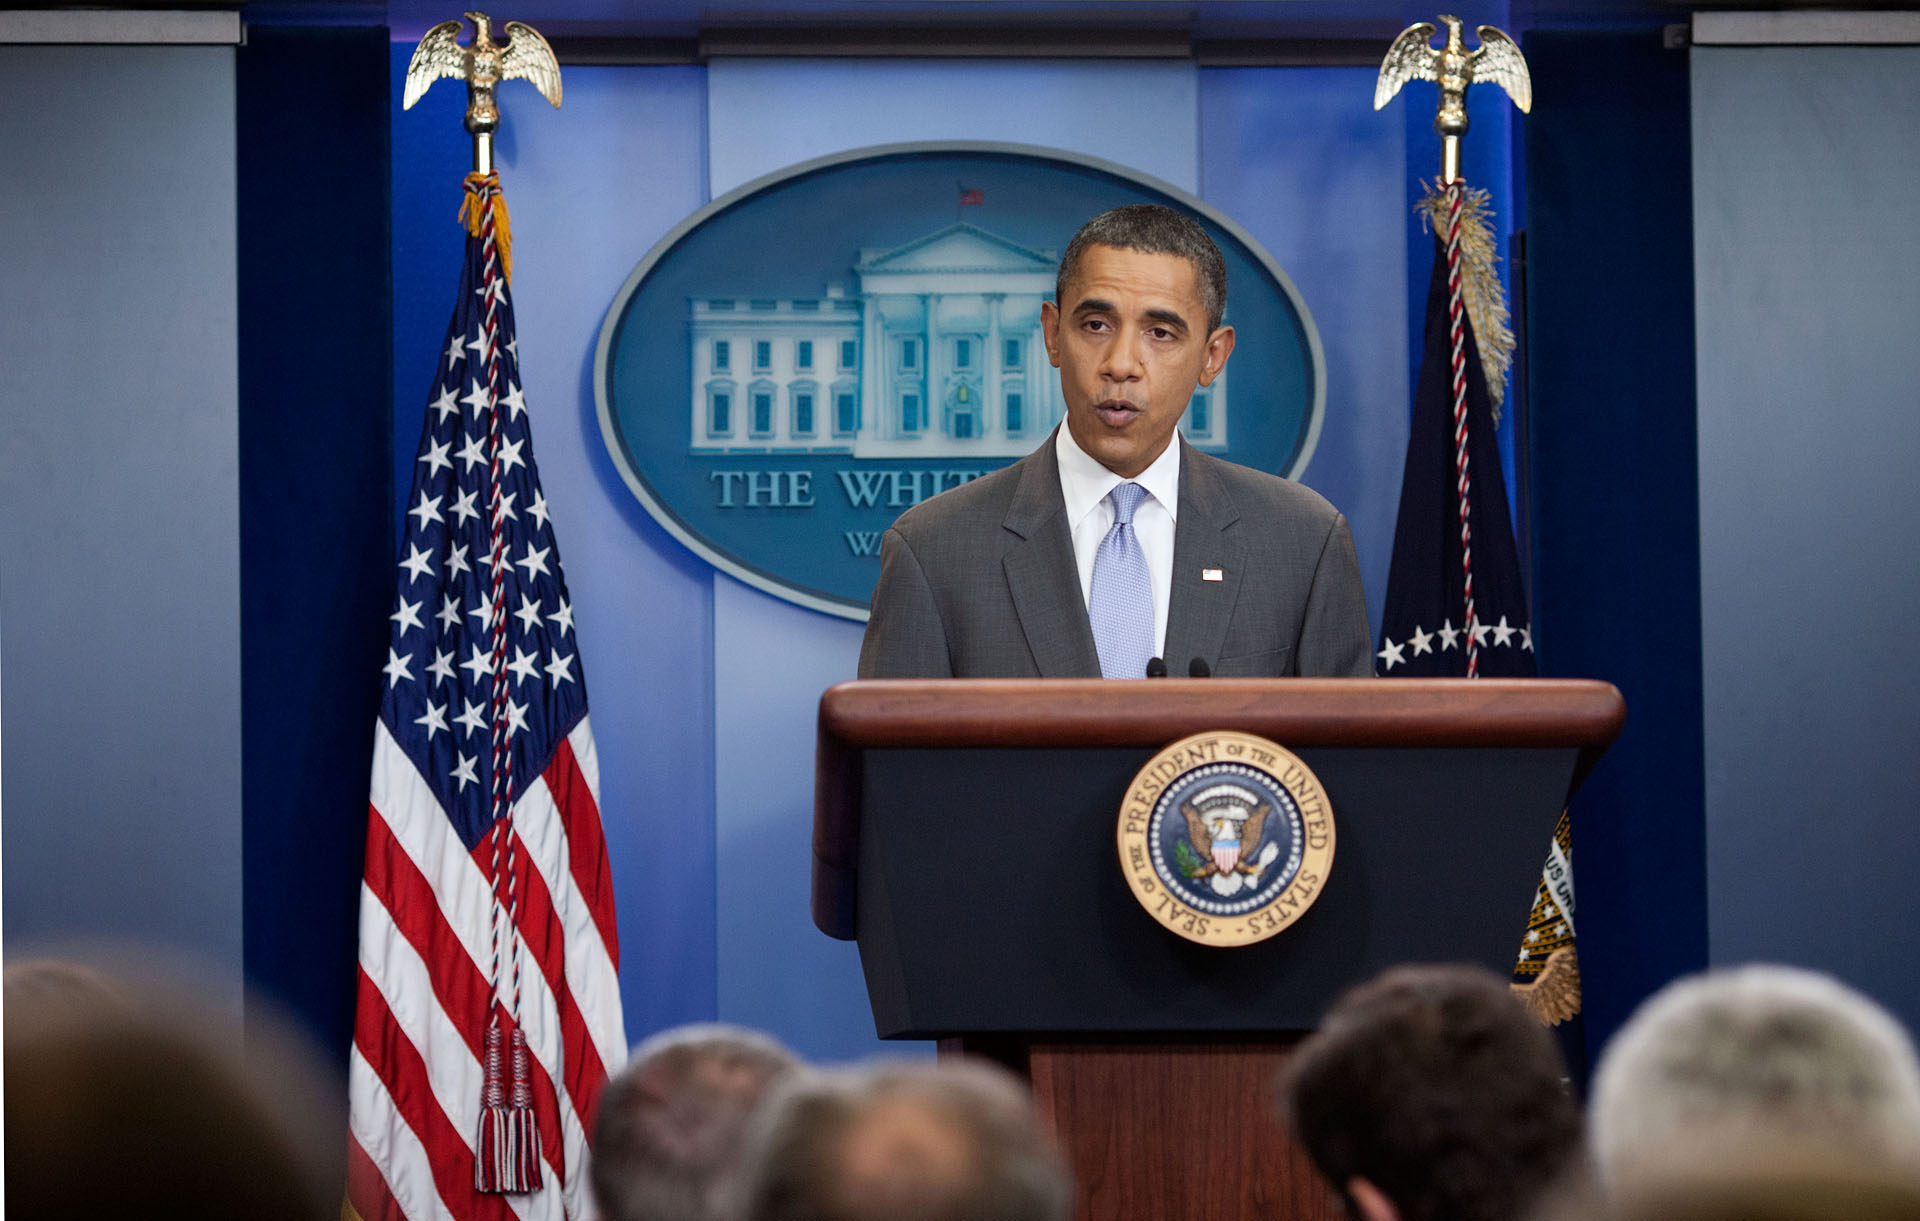 President Barack Obama makes a statement announcing a deal in the ongoing efforts to find a balanced approach to the debt limit and deficit reduction